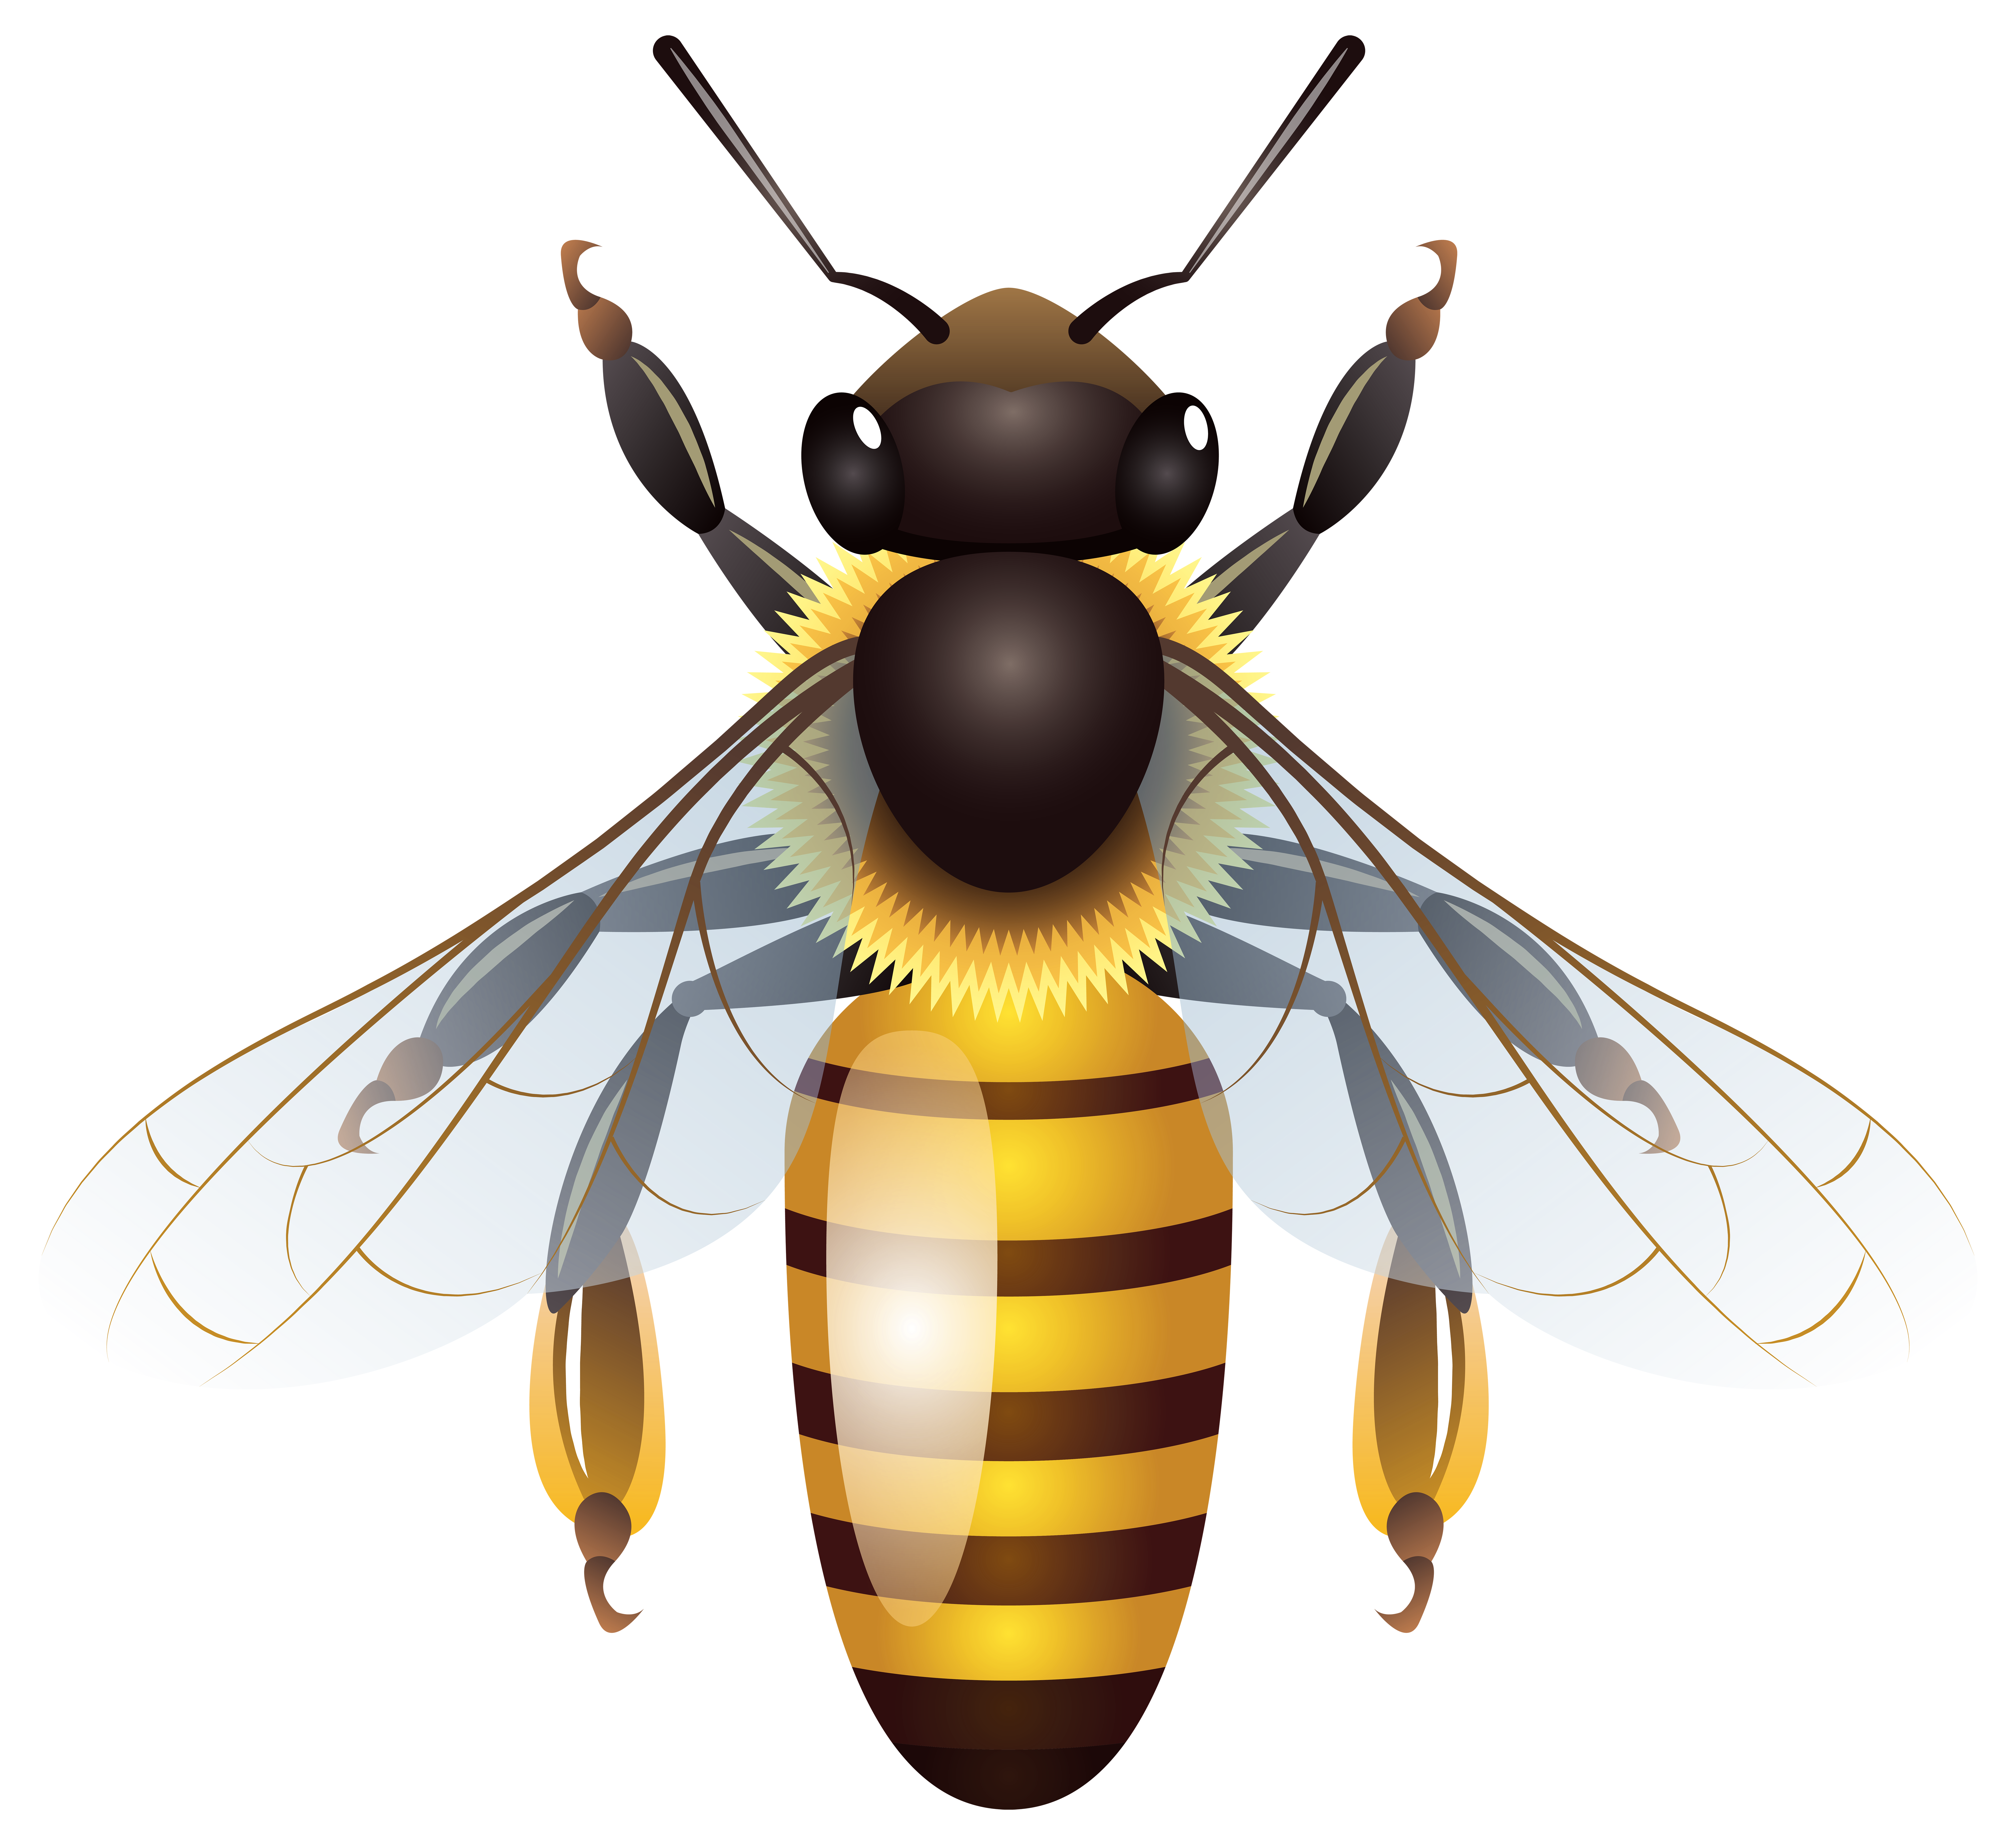 Insect clipart honey bee. Png clip art best